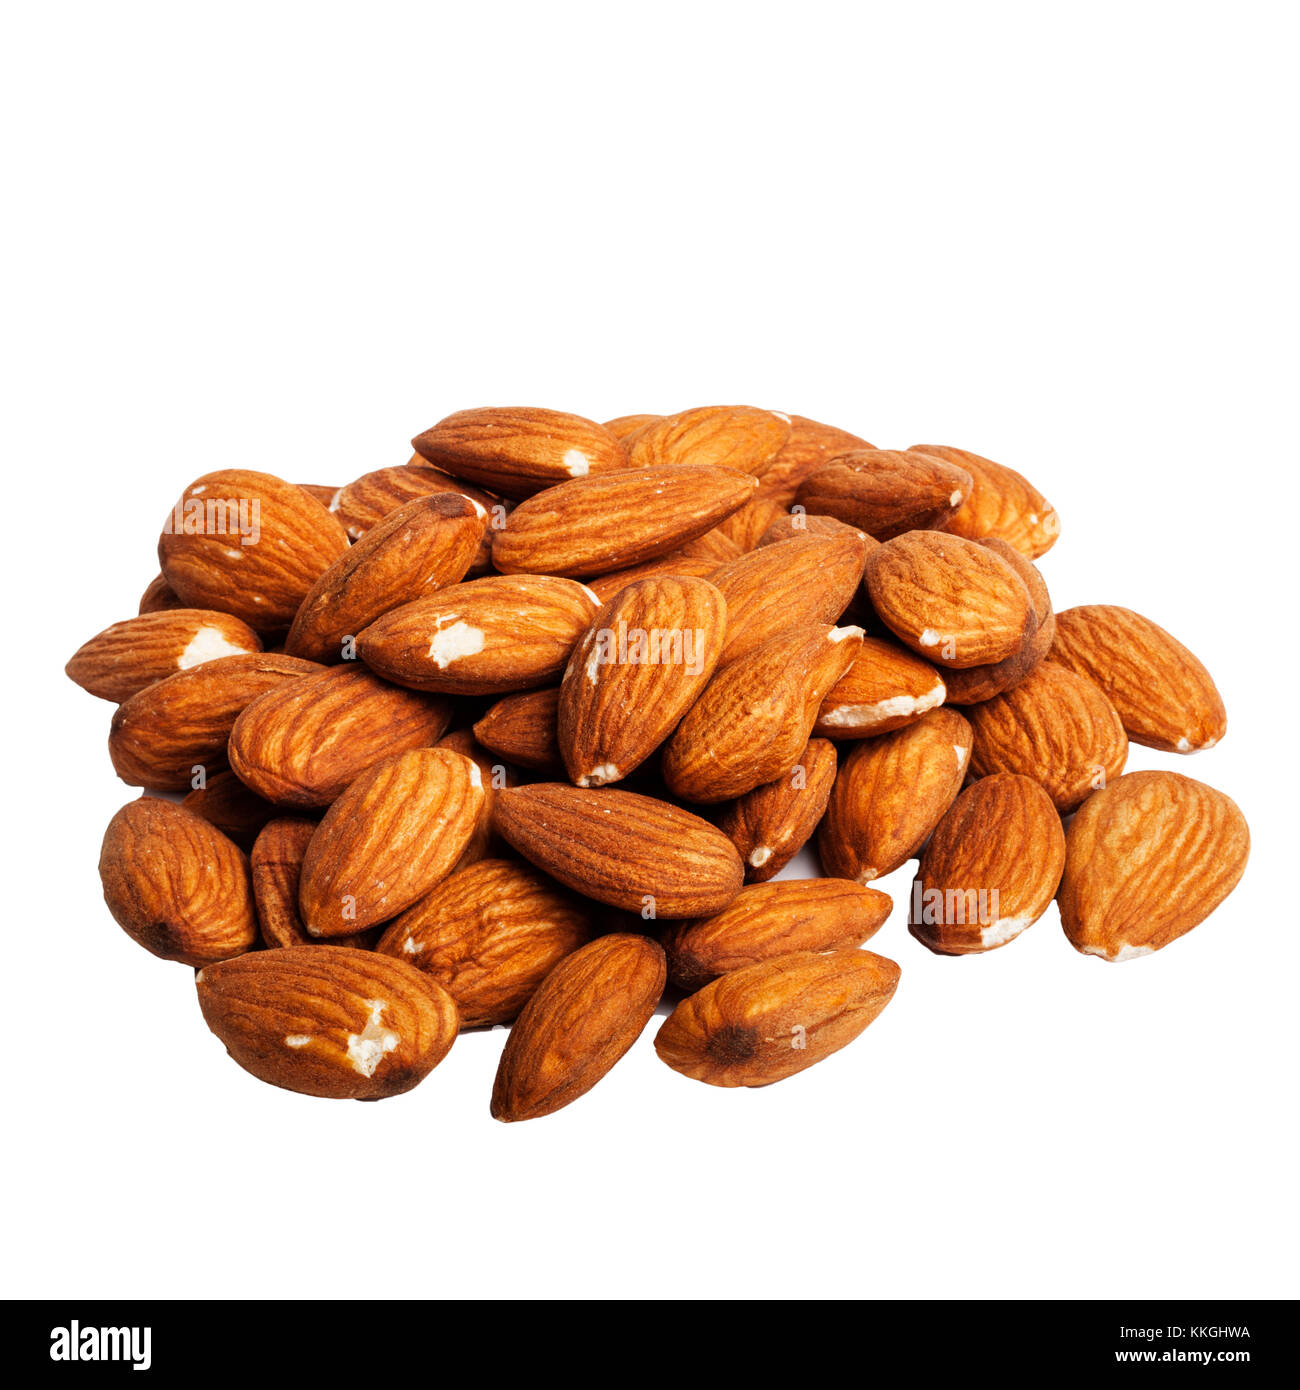 how to eat almond nuts